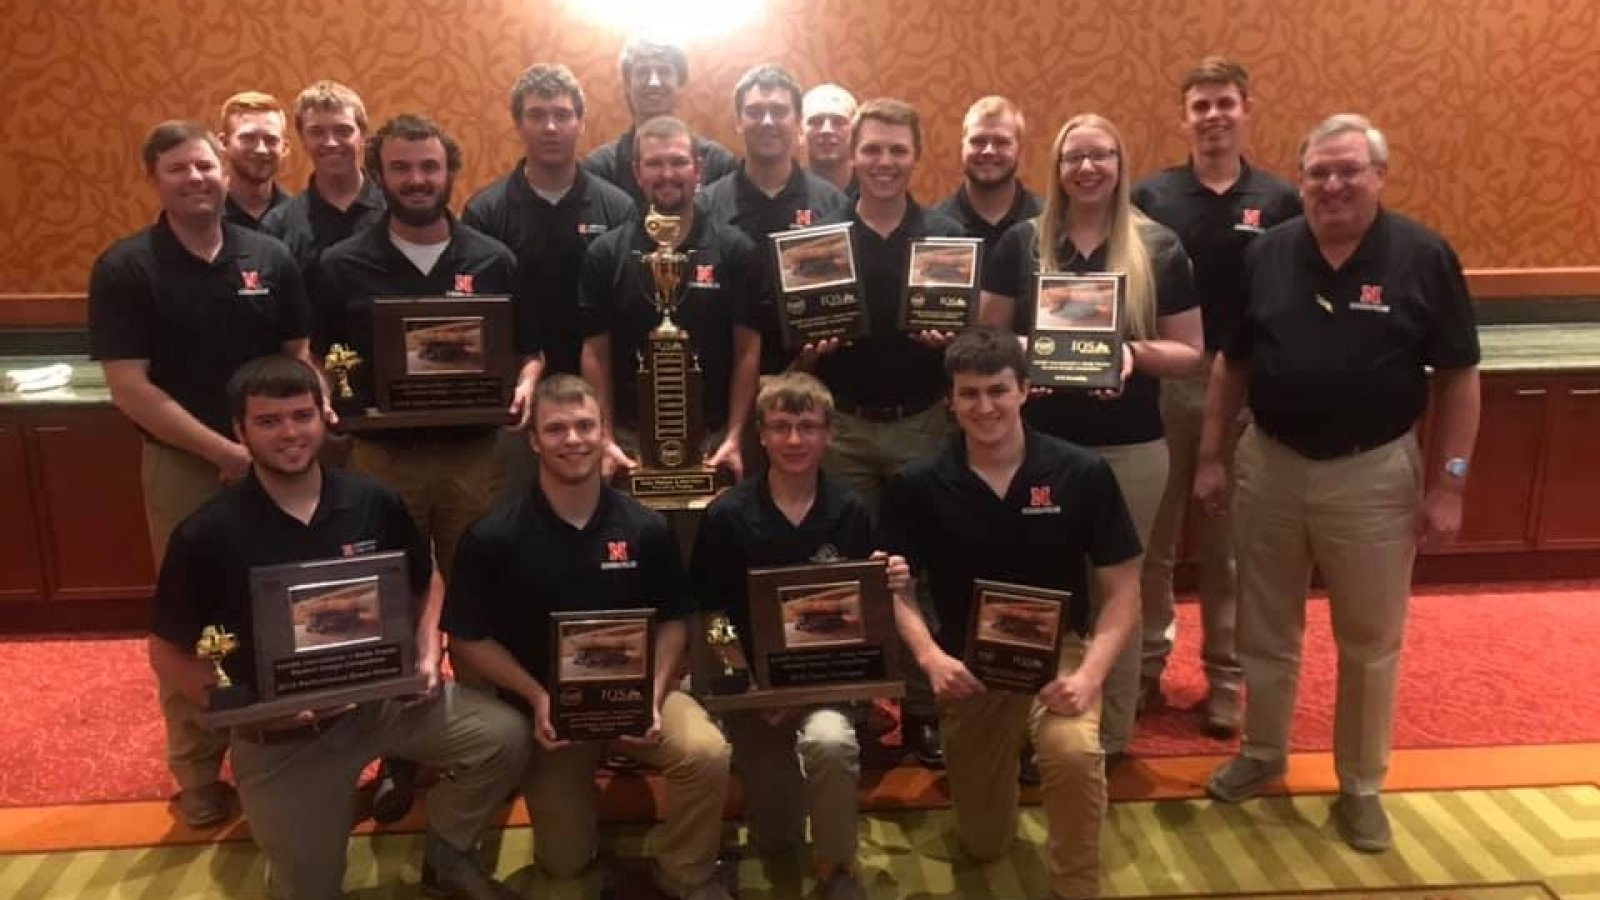 Quarter-scale tractor competition champions